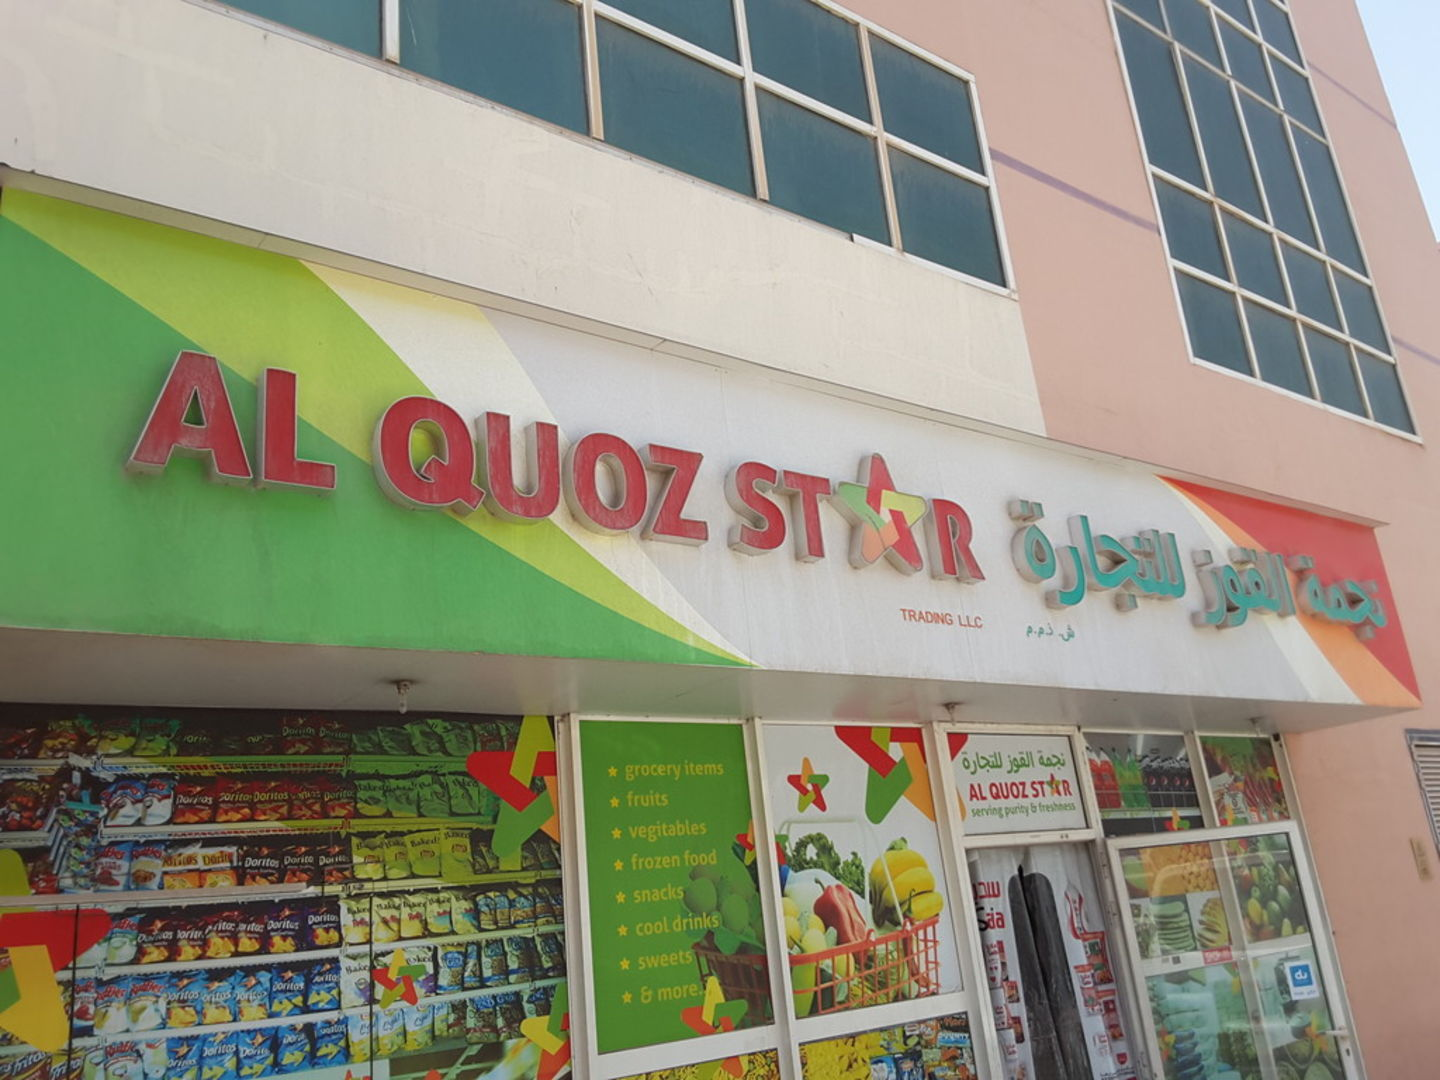 HiDubai-business-al-quoz-star-trading-food-beverage-supermarkets-hypermarkets-grocery-stores-al-quoz-3-dubai-2